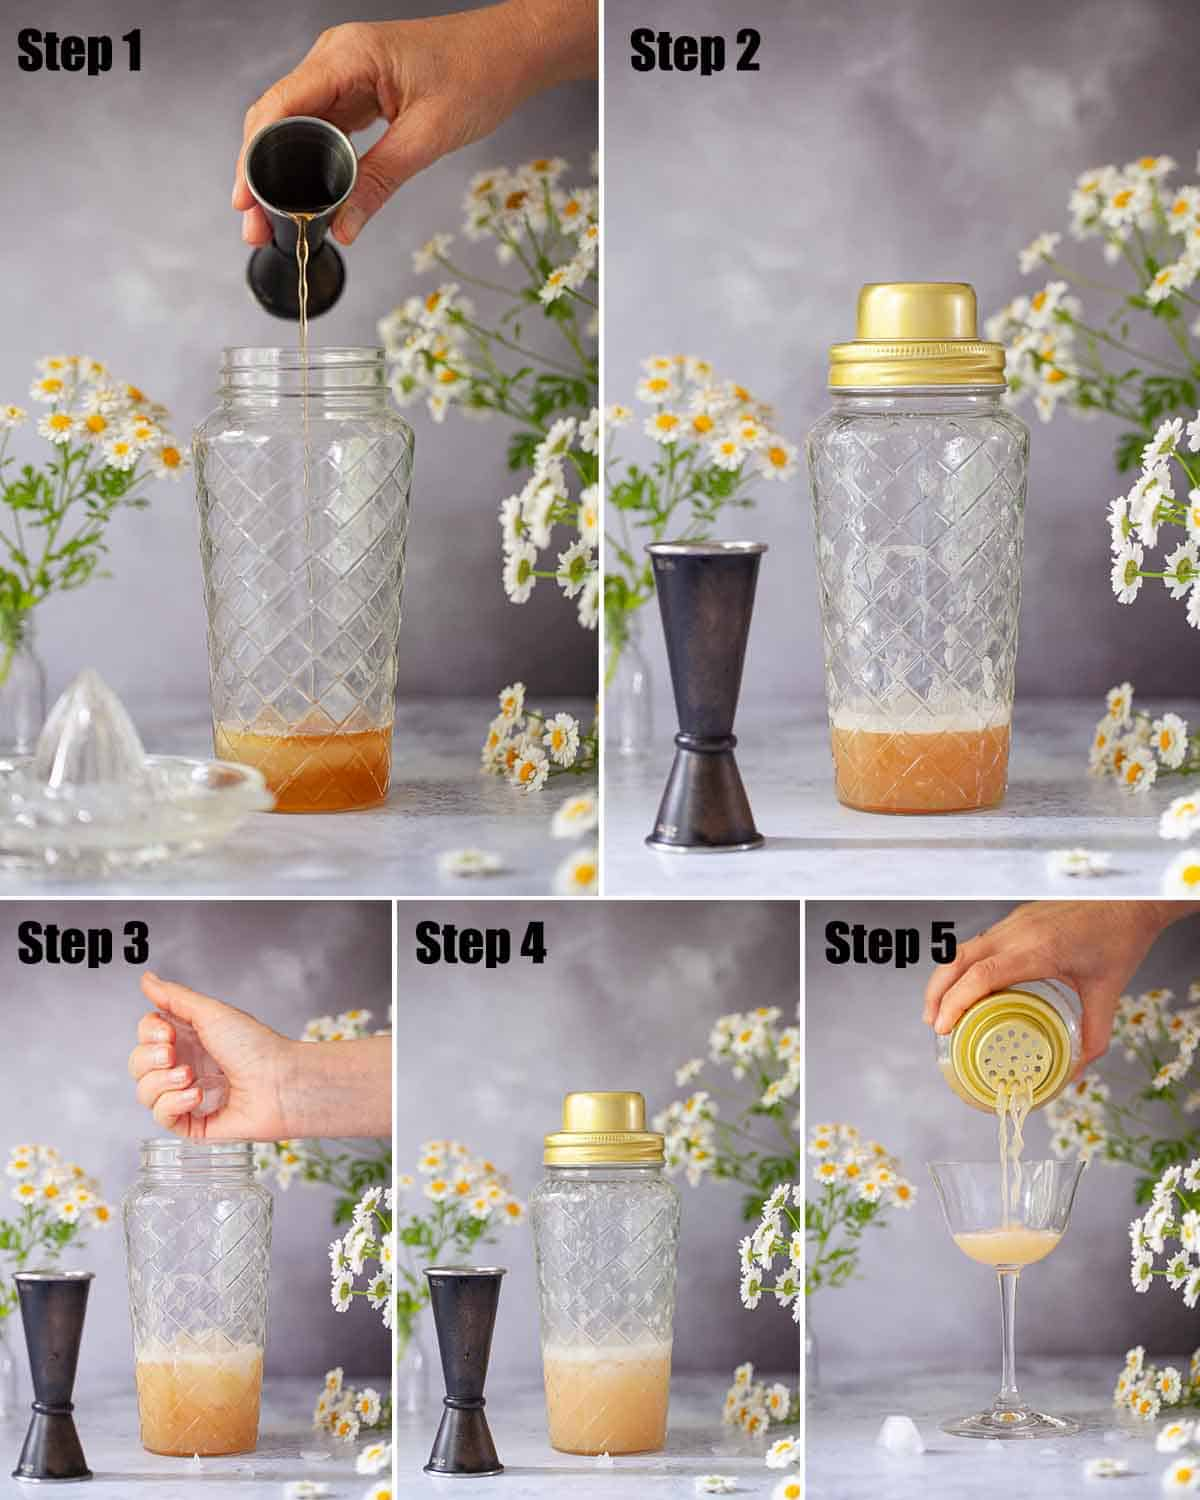 Step by step images to making an alcohol drink with egg white white as an ingredient